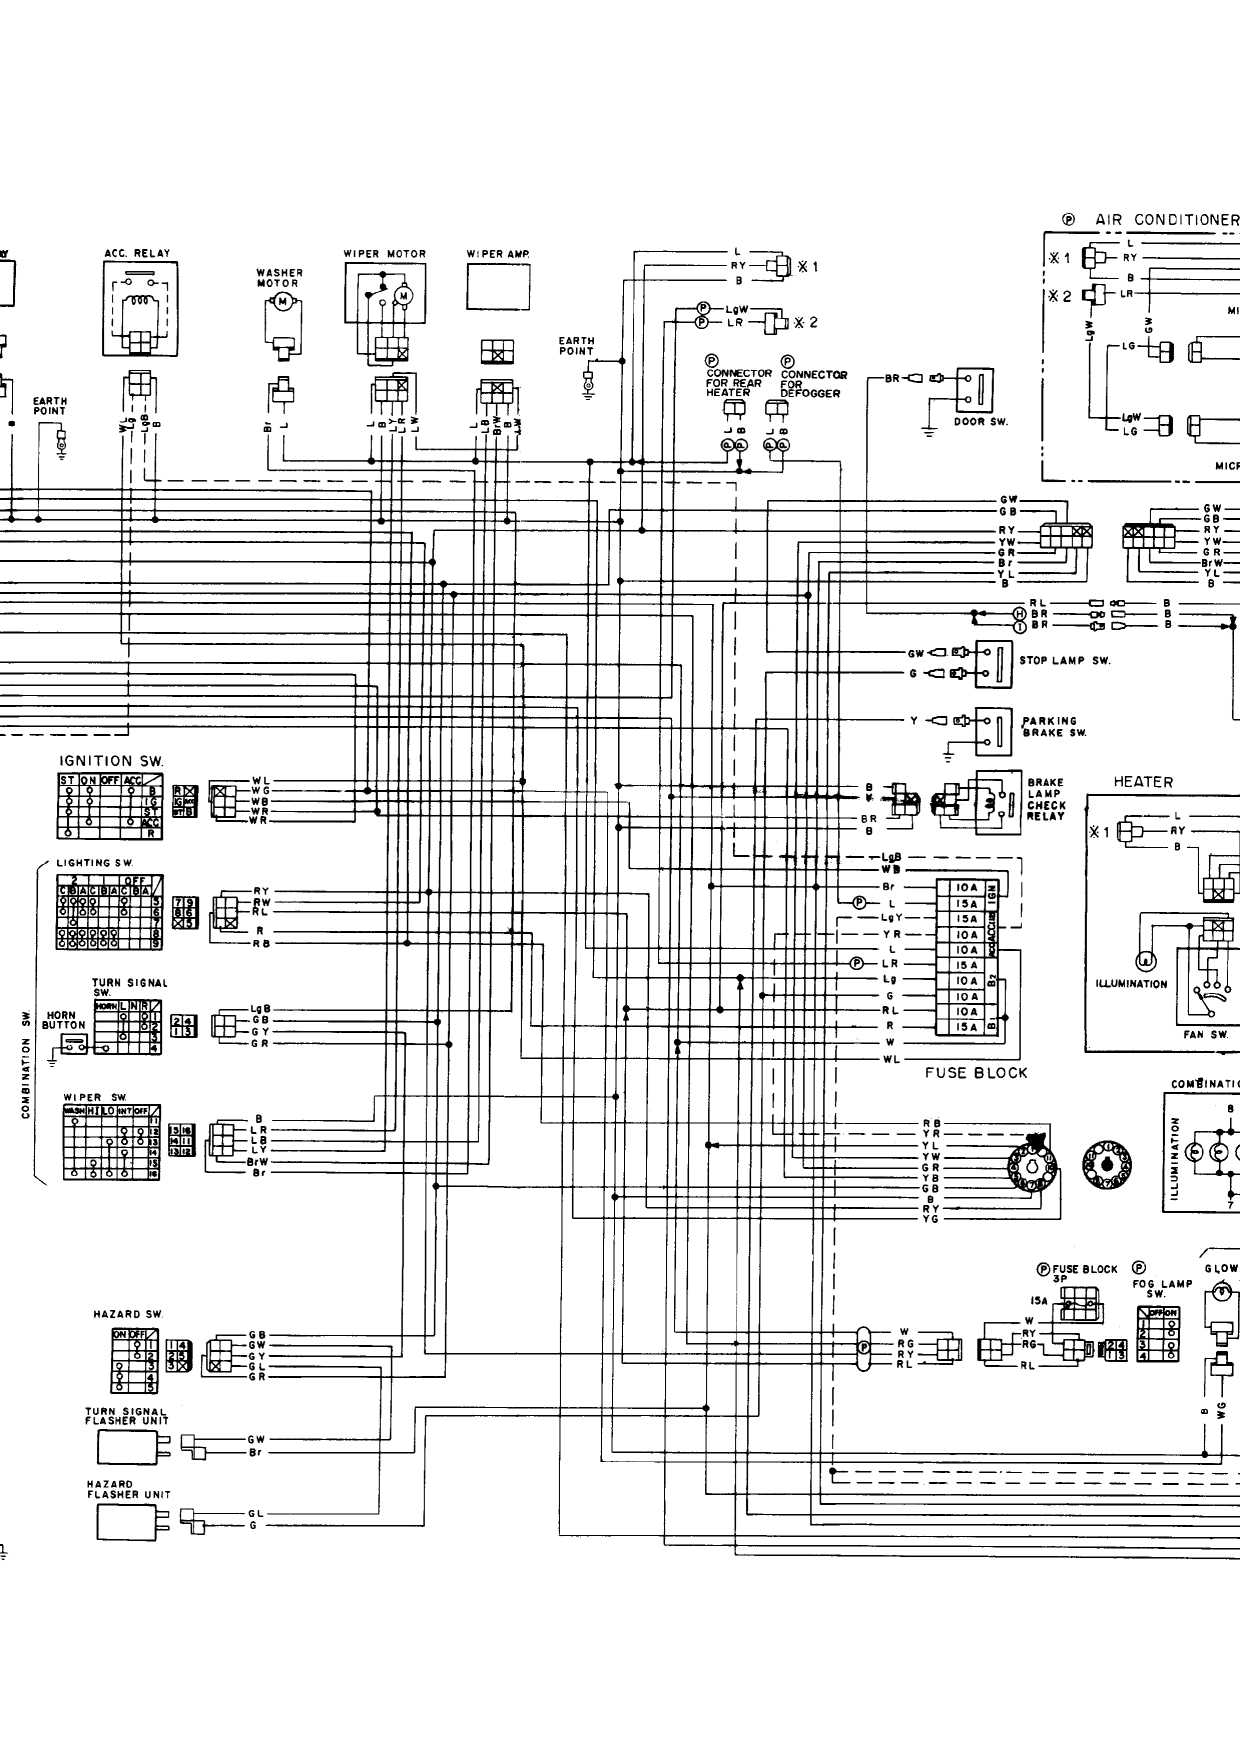 diagram  gq patrol wiring diagram full version hd quality